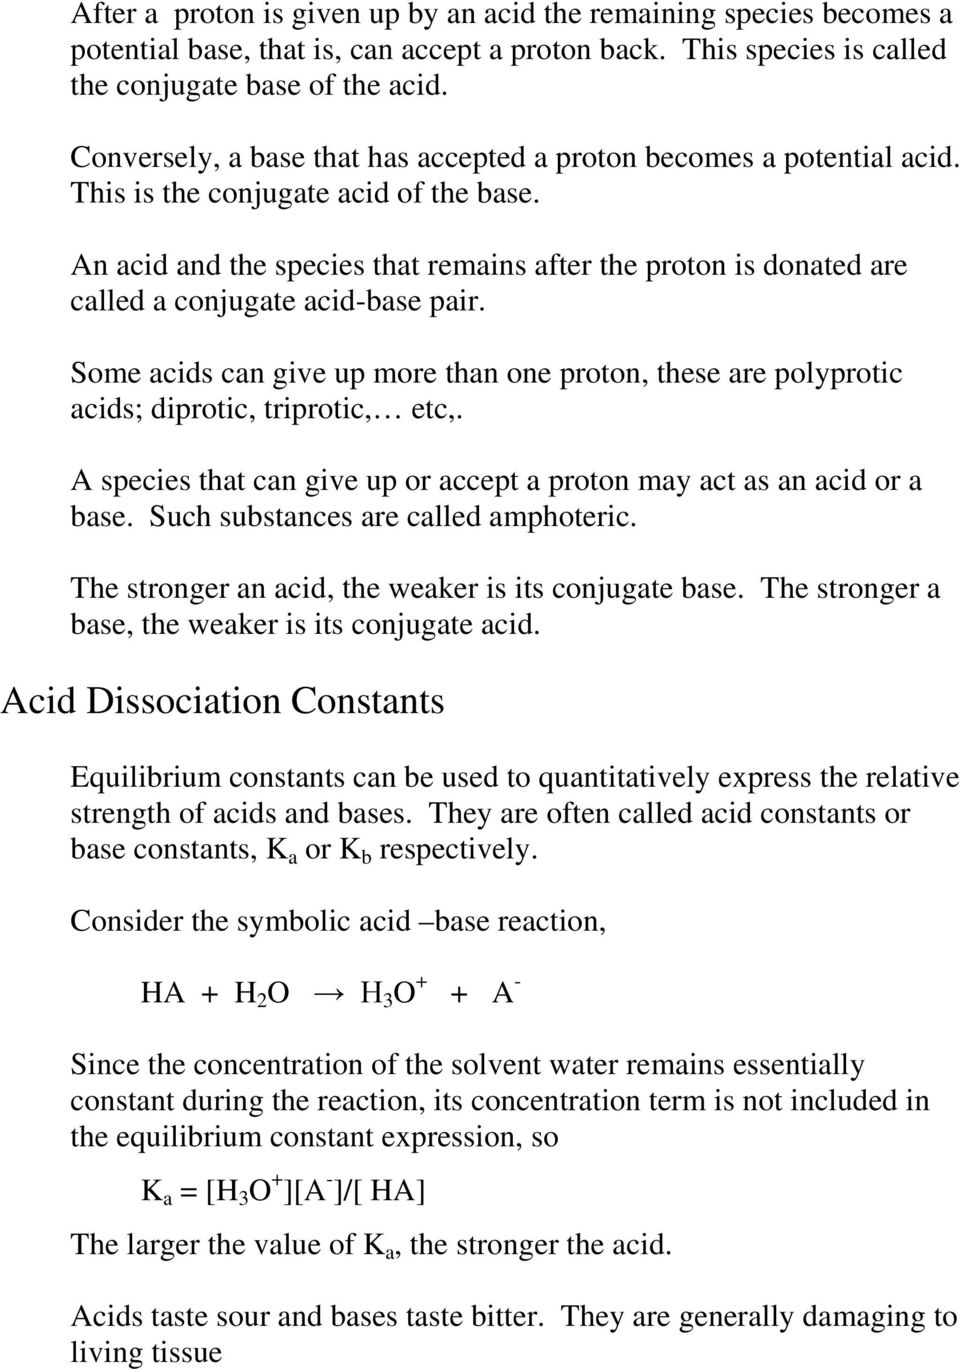 An acid and the species that remains after the proton is donated are called a conjugate acid-base pair.